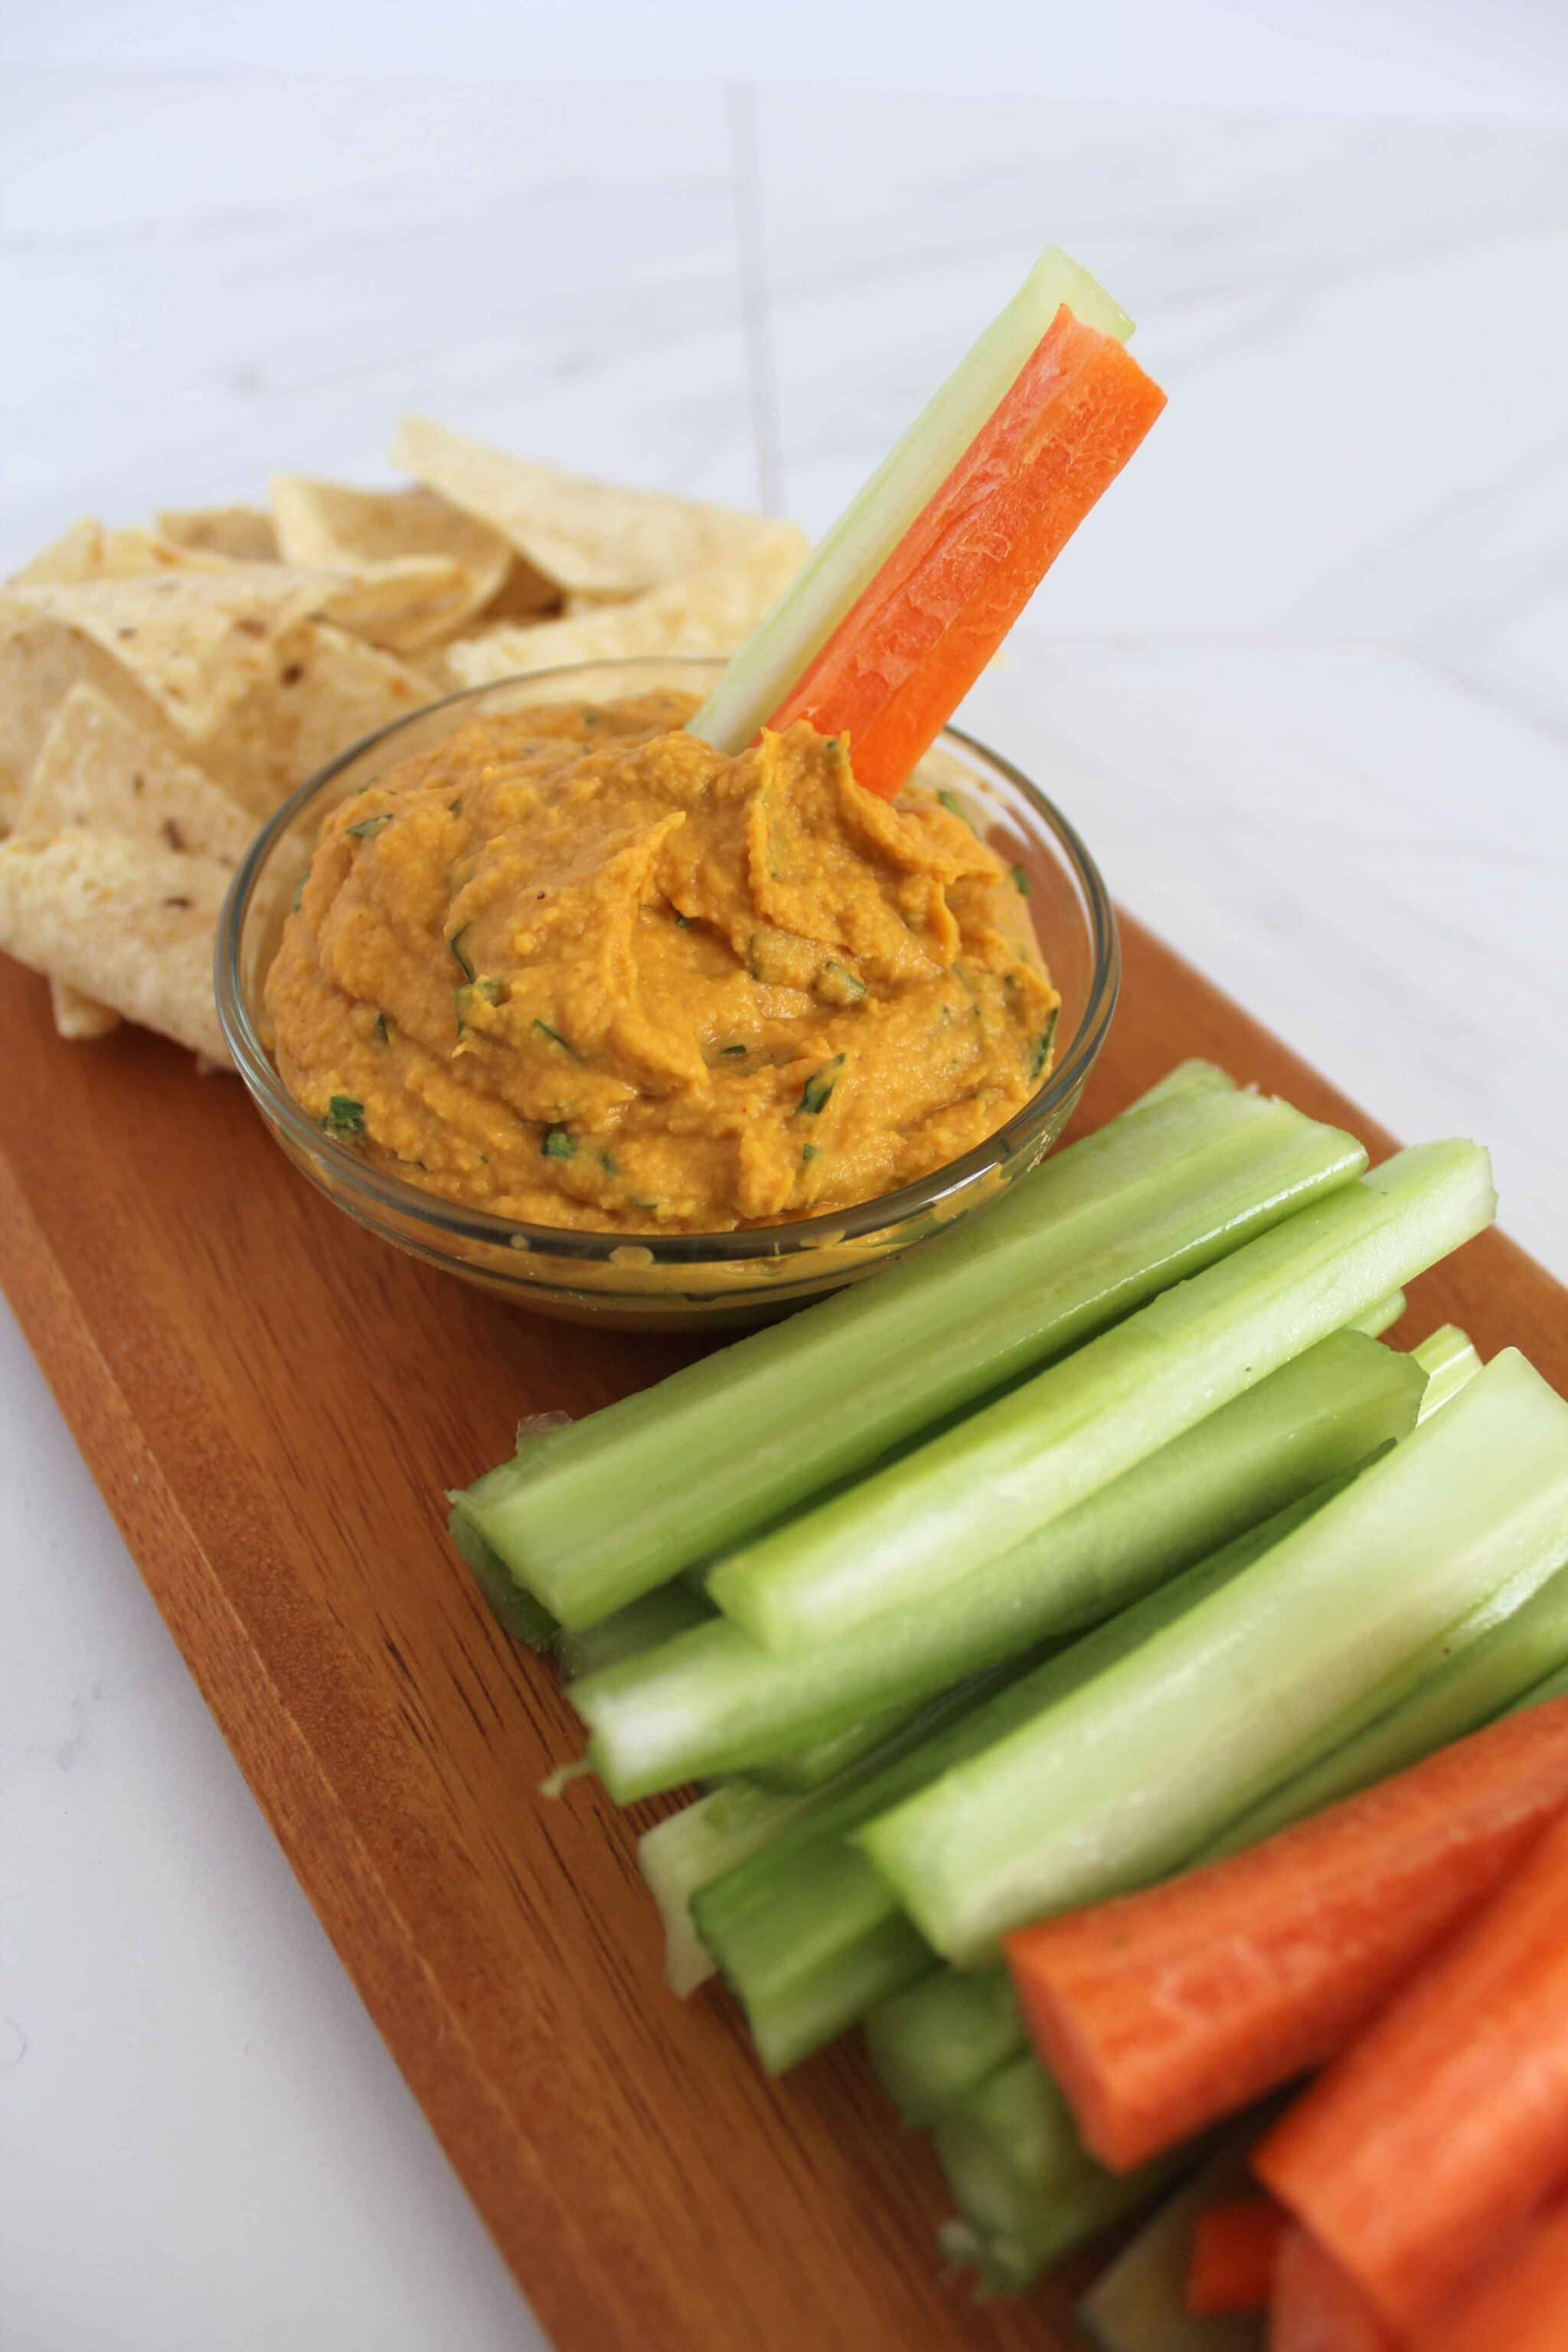 Thai Hummus Recipe with Pumpkin and vegetables on cutting board